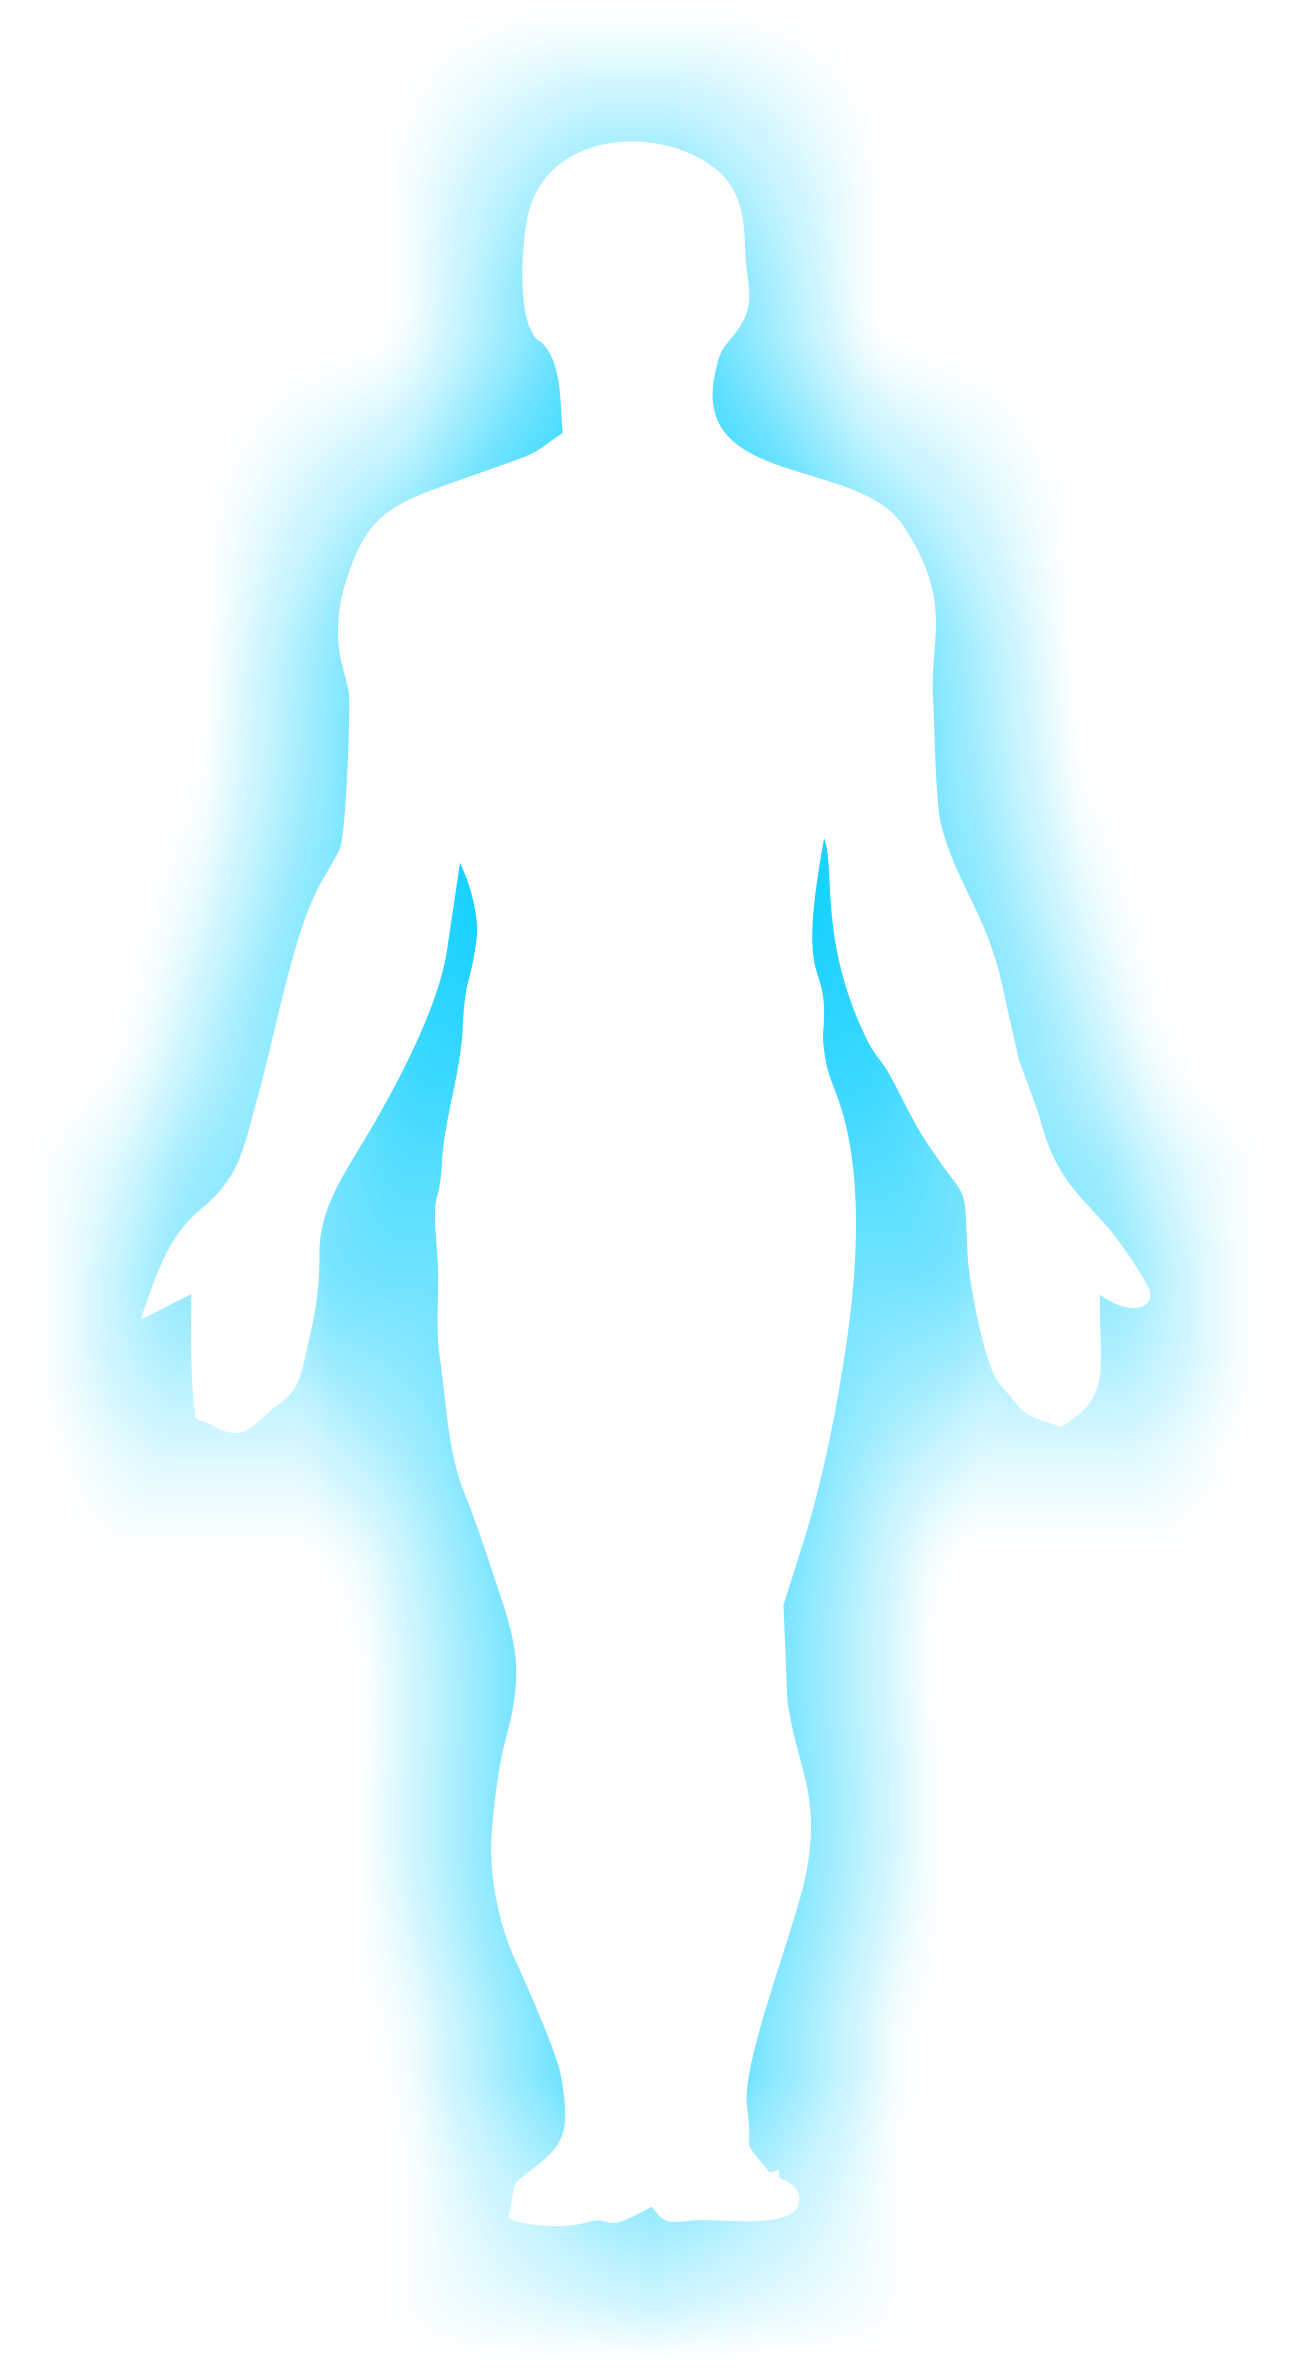 clipart human figure - photo #21